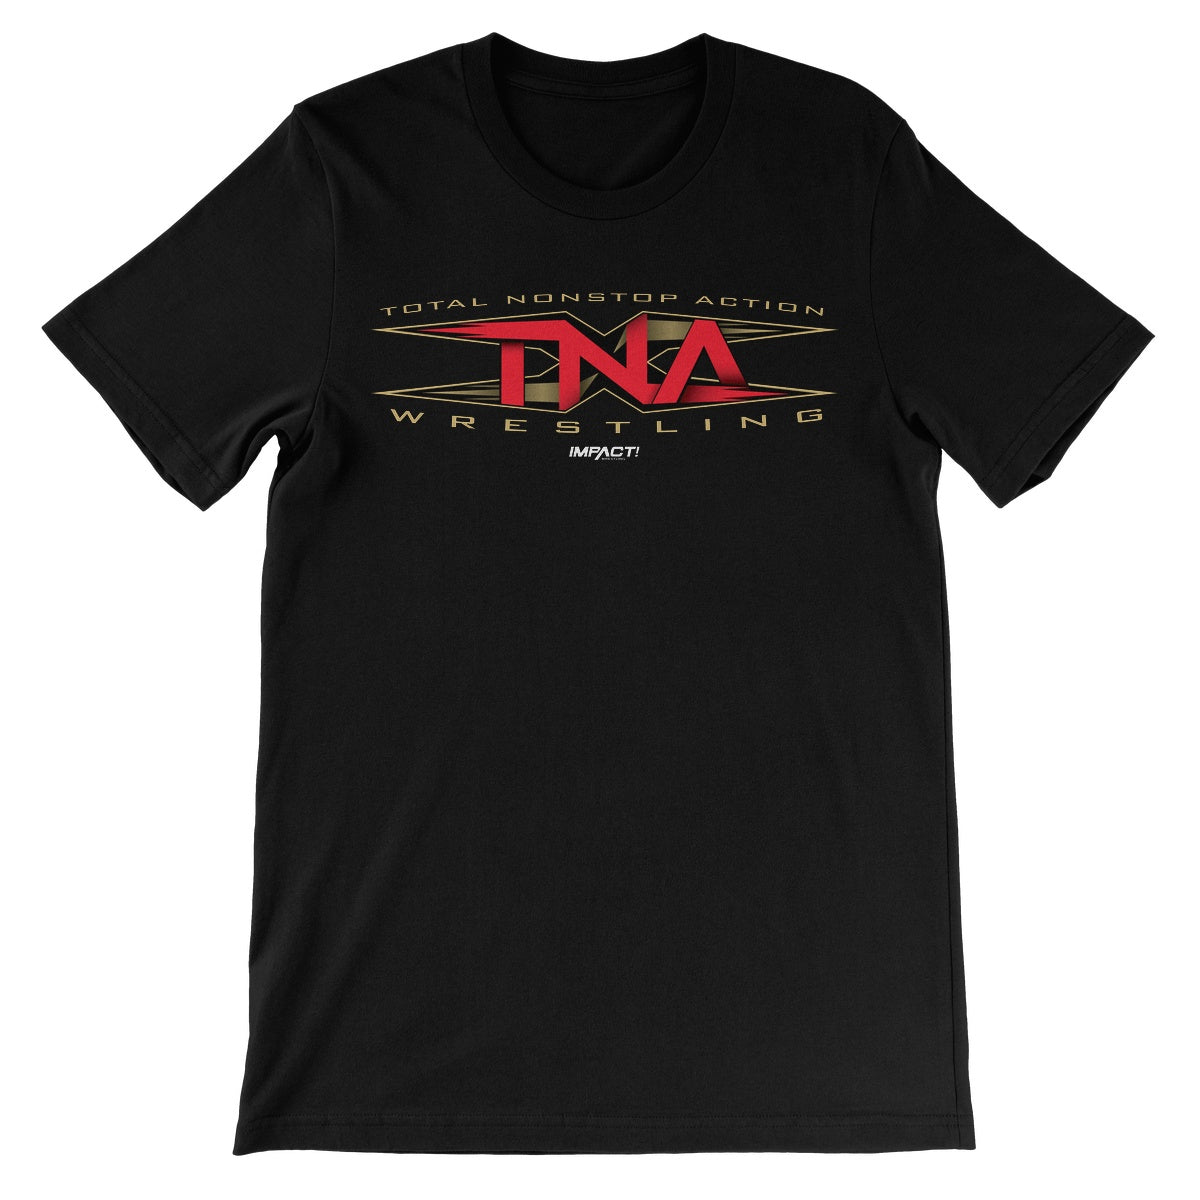 TNA - Total Non-Stop Action Wrestling Unisex Short Sleeve T-Shirt